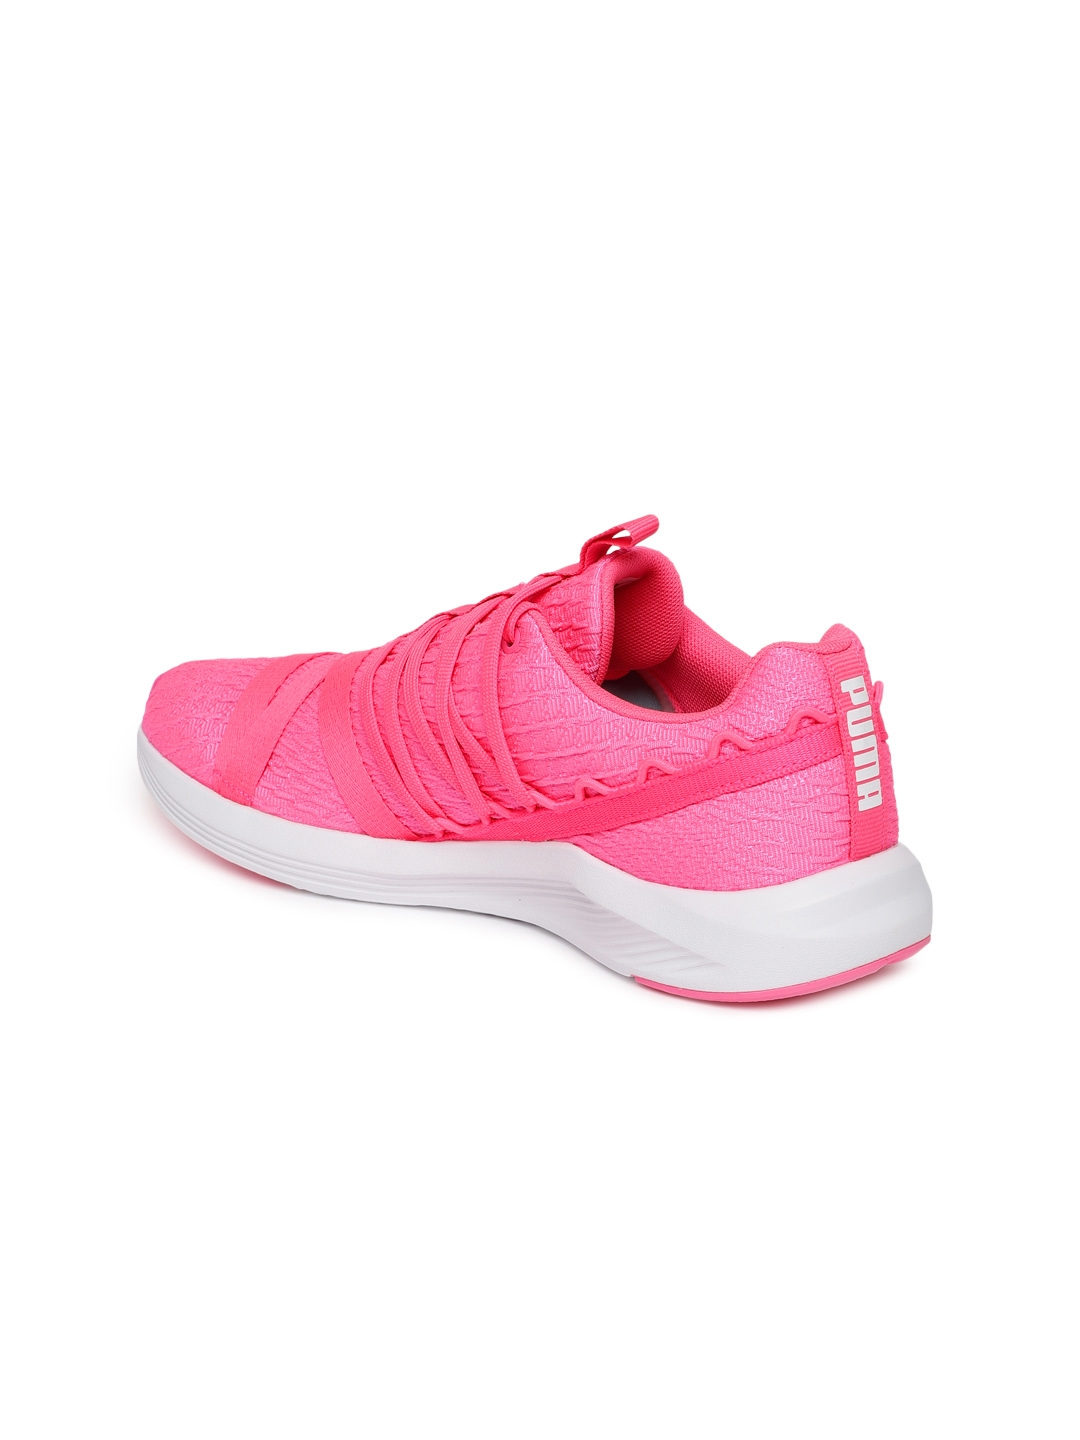 80824aa9378 Buy Puma Women Pink Prowl Alt 2 Training Shoes - Sports Shoes for ...